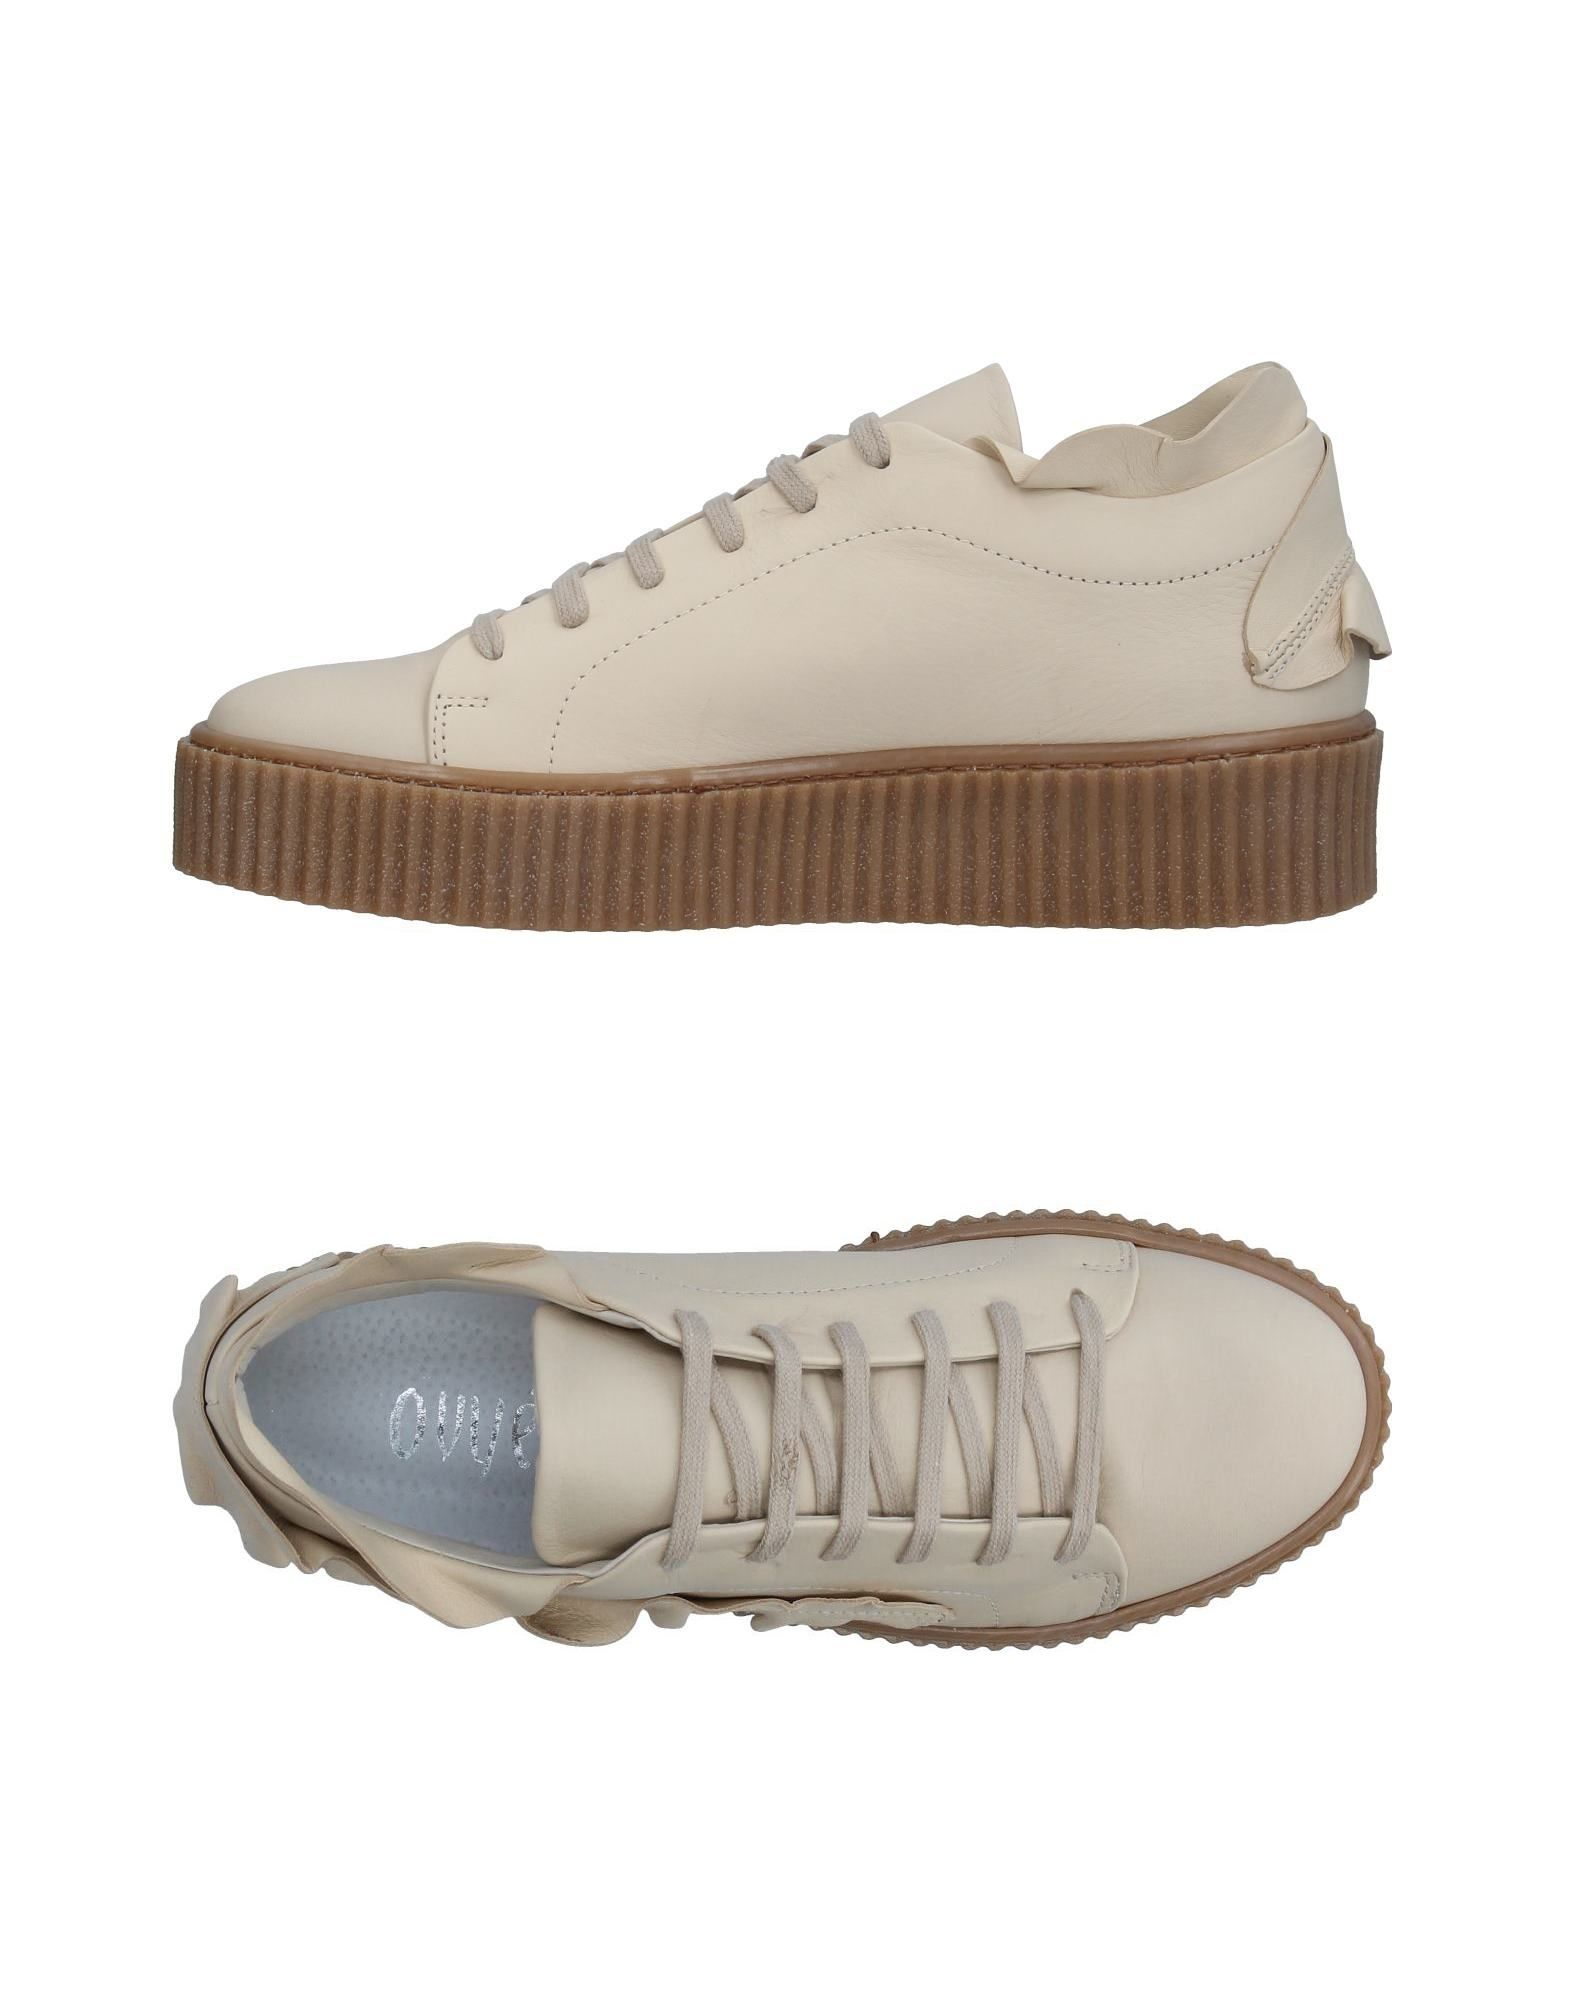 Ovye' By Cristina Lucchi Sneakers  Damen  Sneakers 11336159LE Gute Qualität beliebte Schuhe a5d703